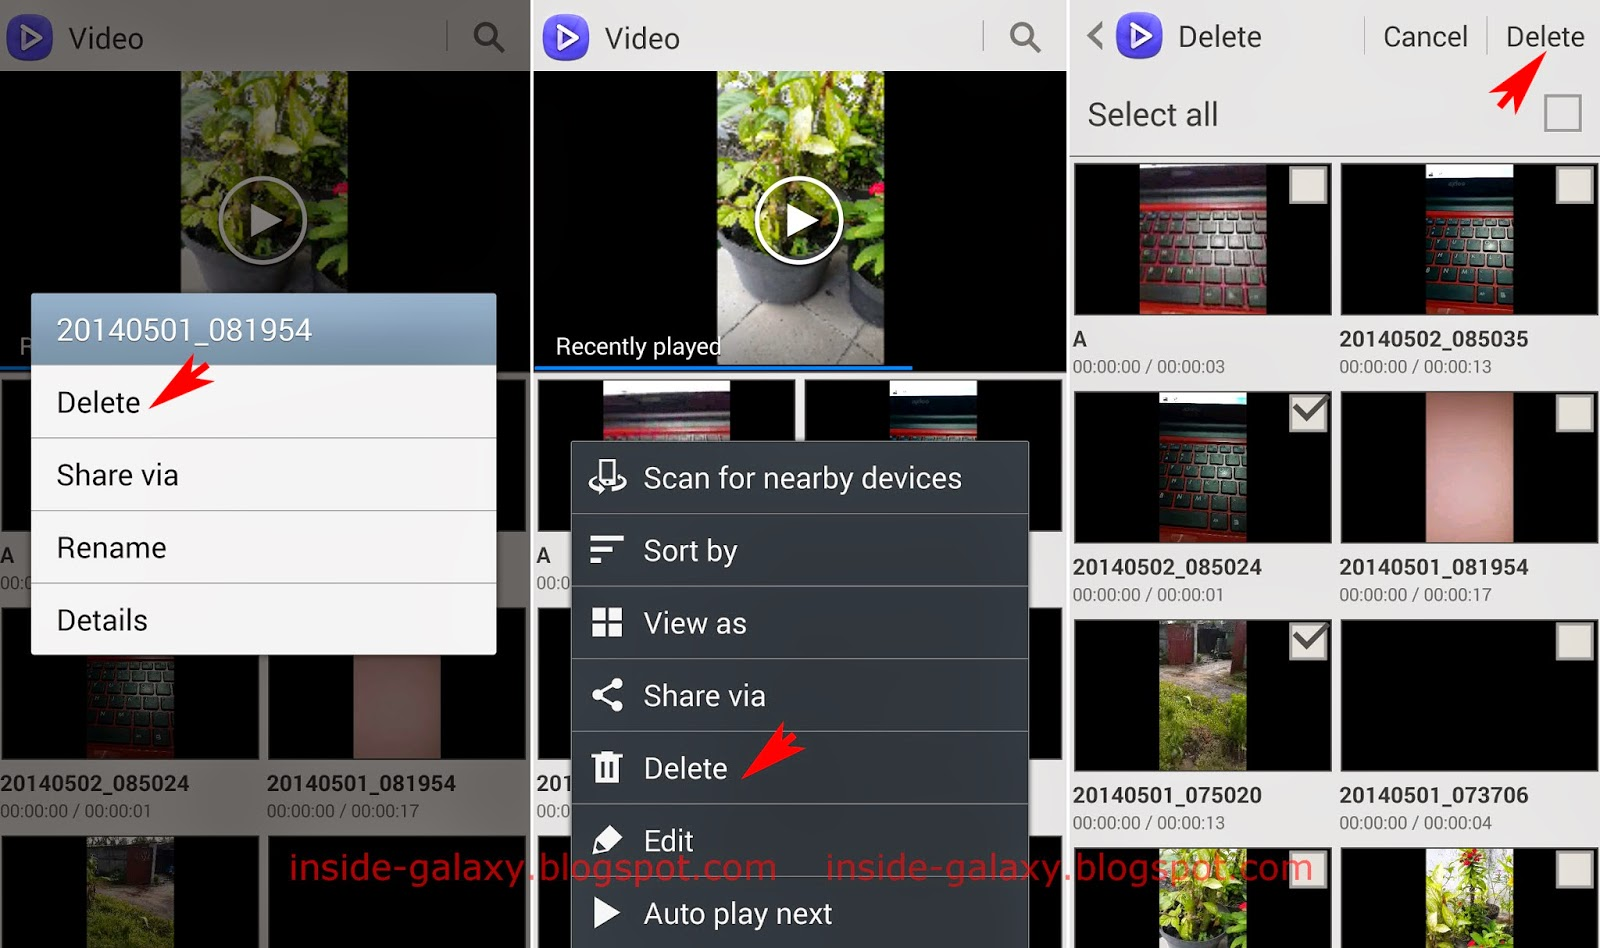 Samsung Galaxy S4: How to Delete Videos in the Video Player App in